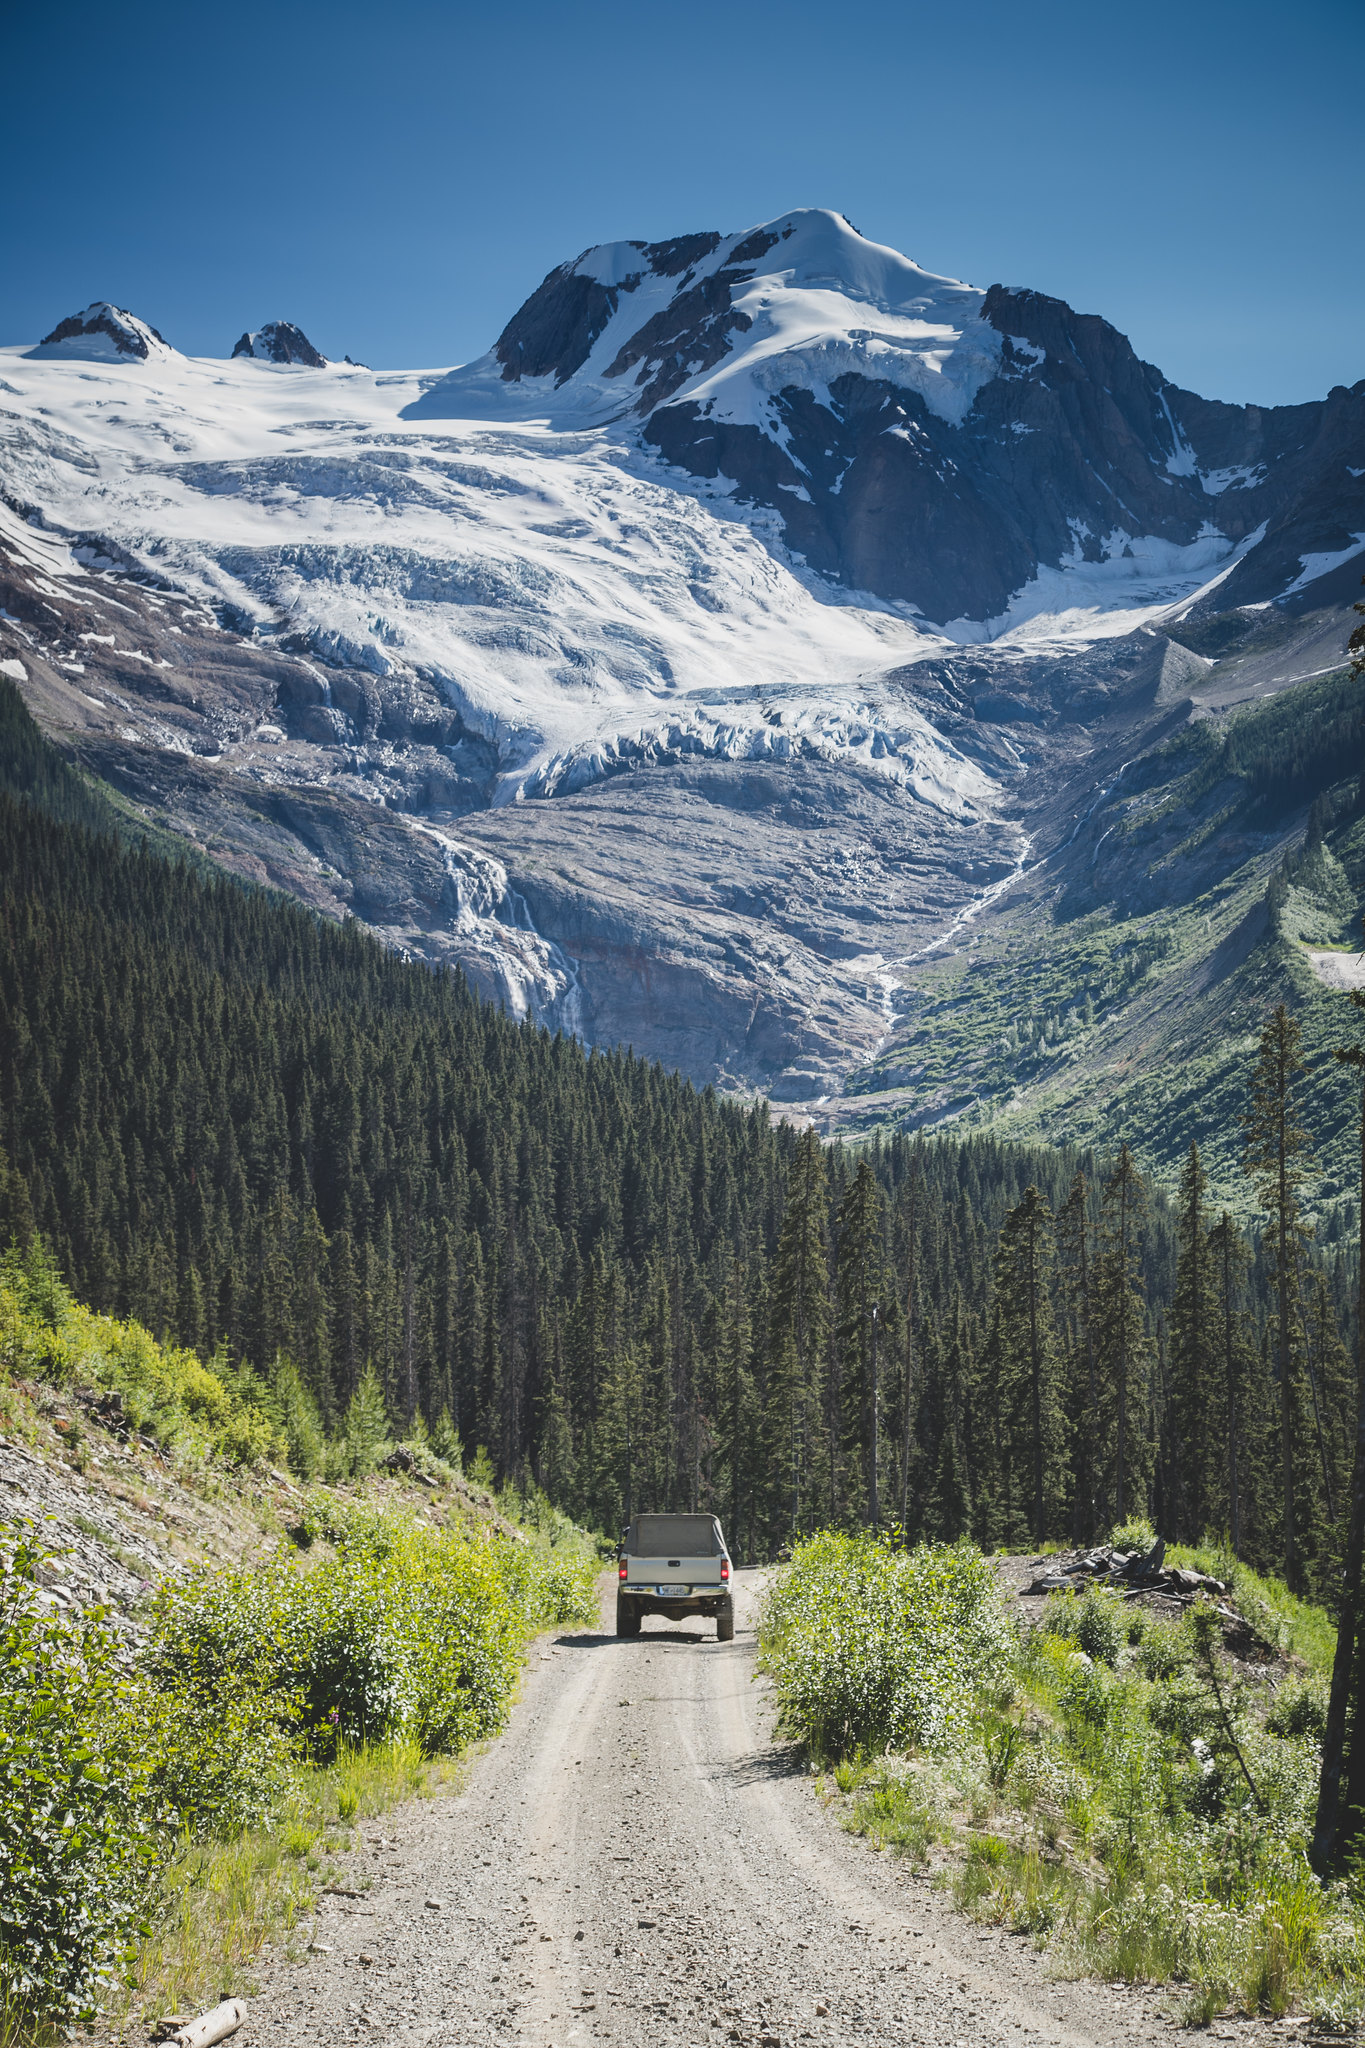 COLOSSAL 2019 - An Adventure Offroad Tour